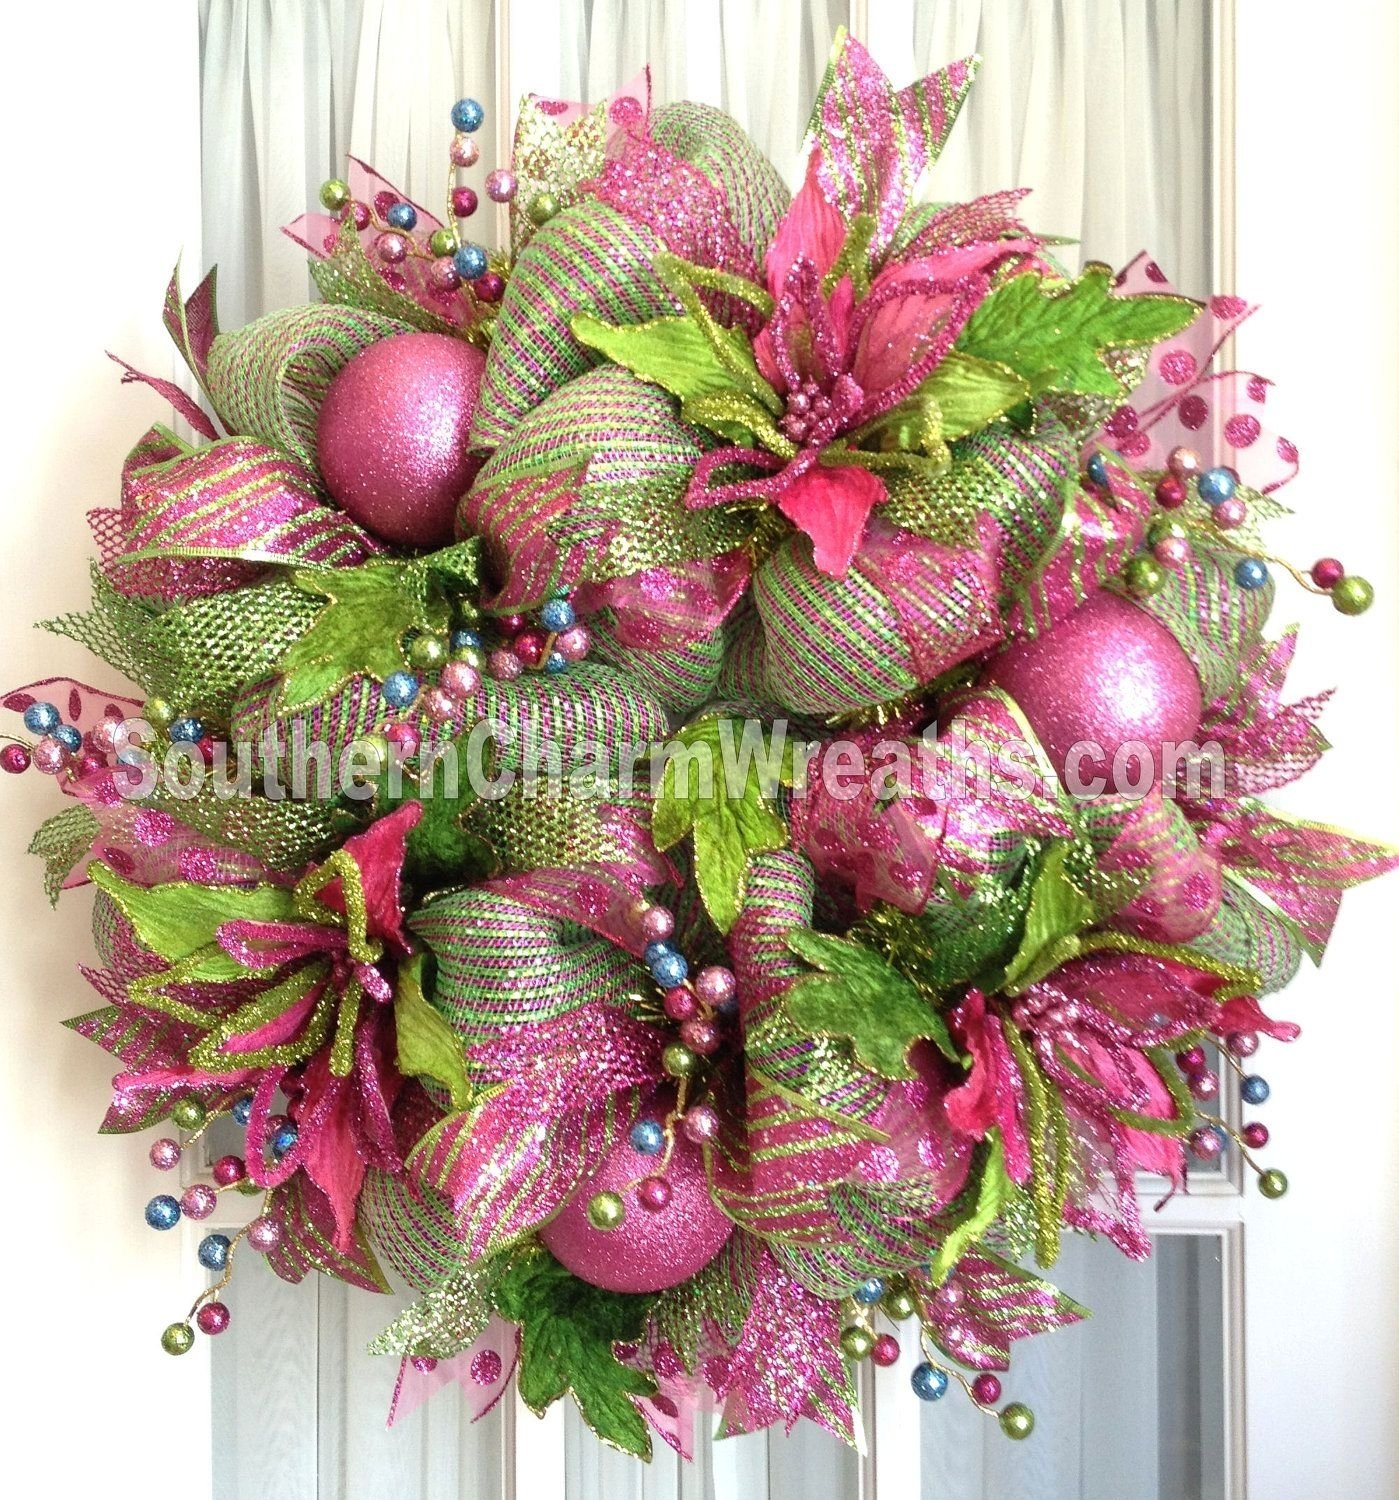 10 Lovely Christmas Deco Mesh Wreath Ideas deco mesh christmas wreath hot pink lime green for door or wall 2020